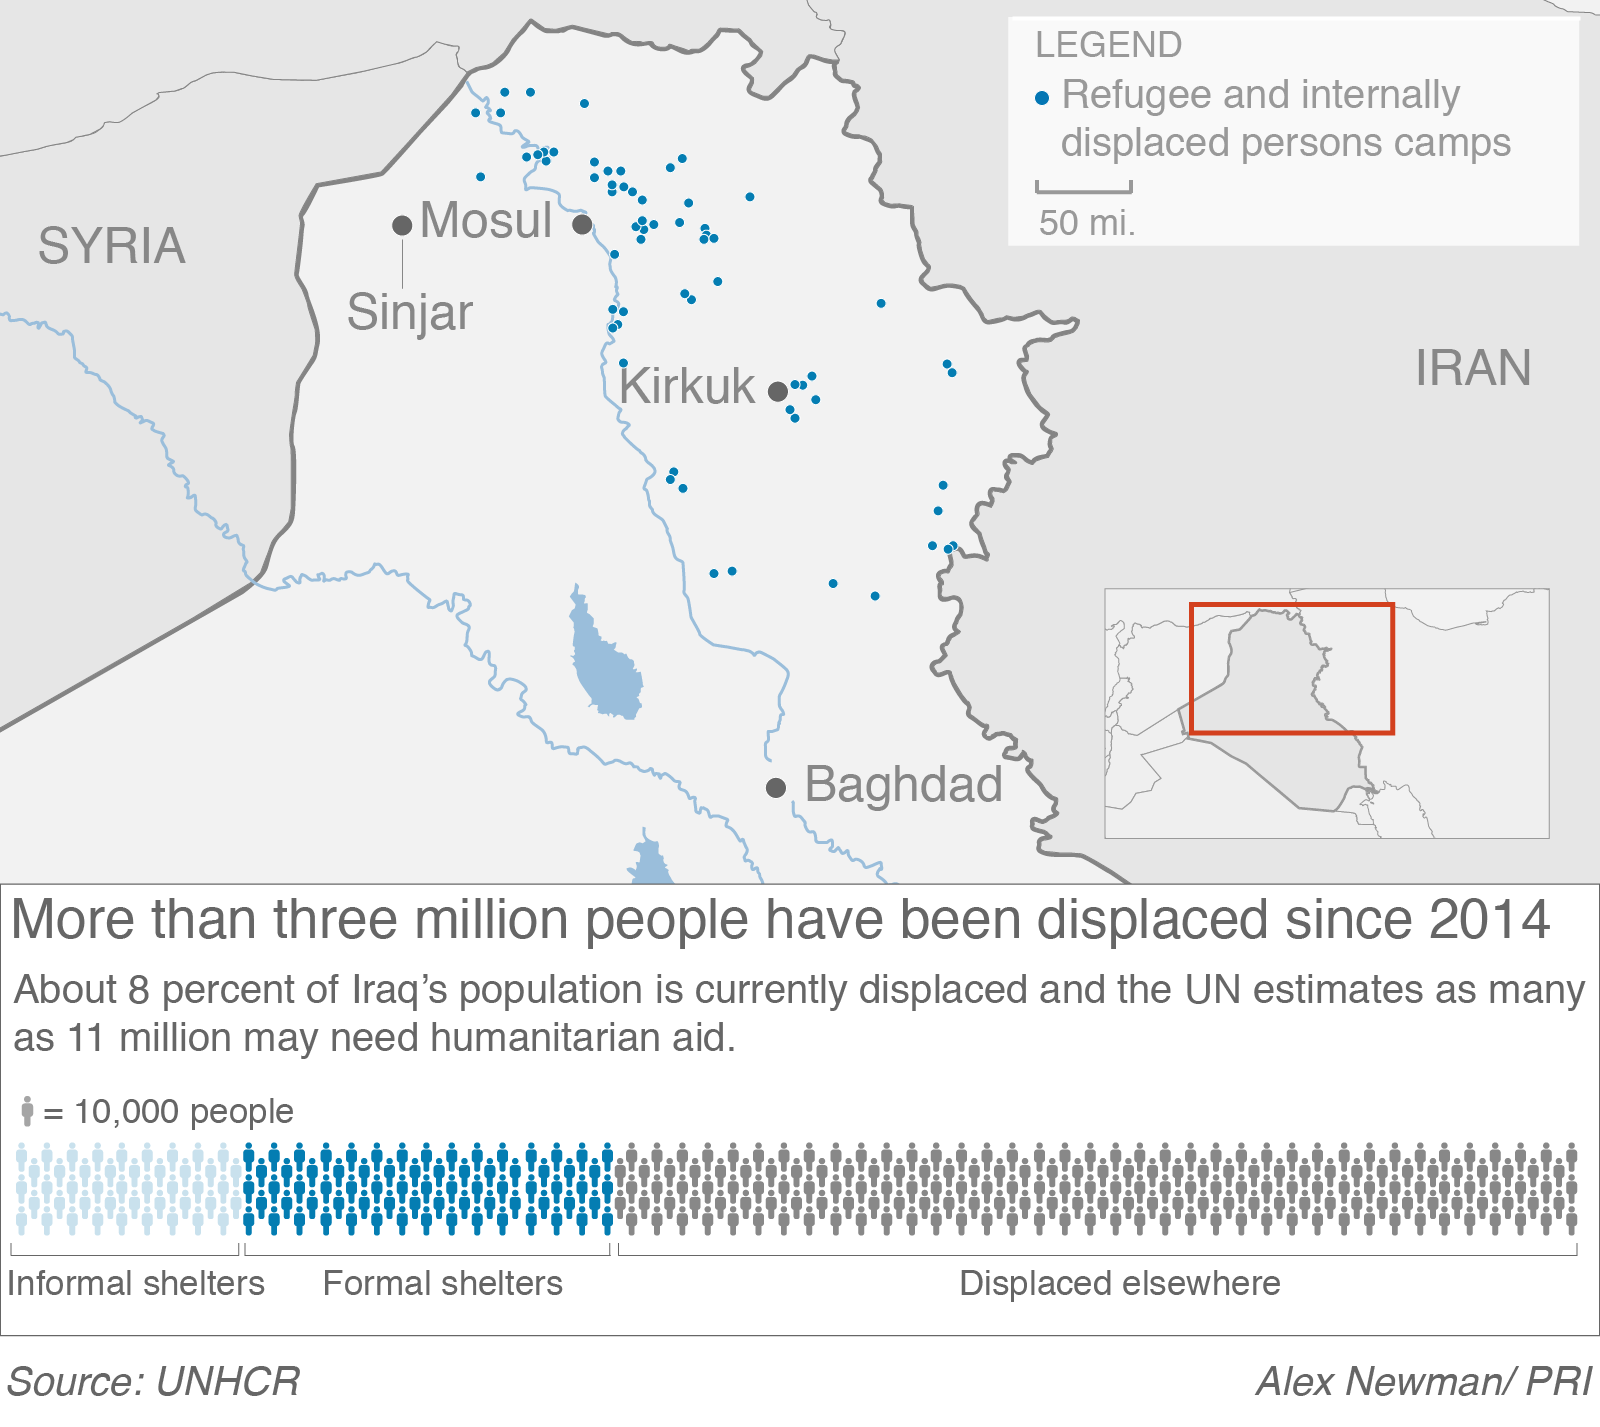 Locations of camps for internally displaced people in Iraq